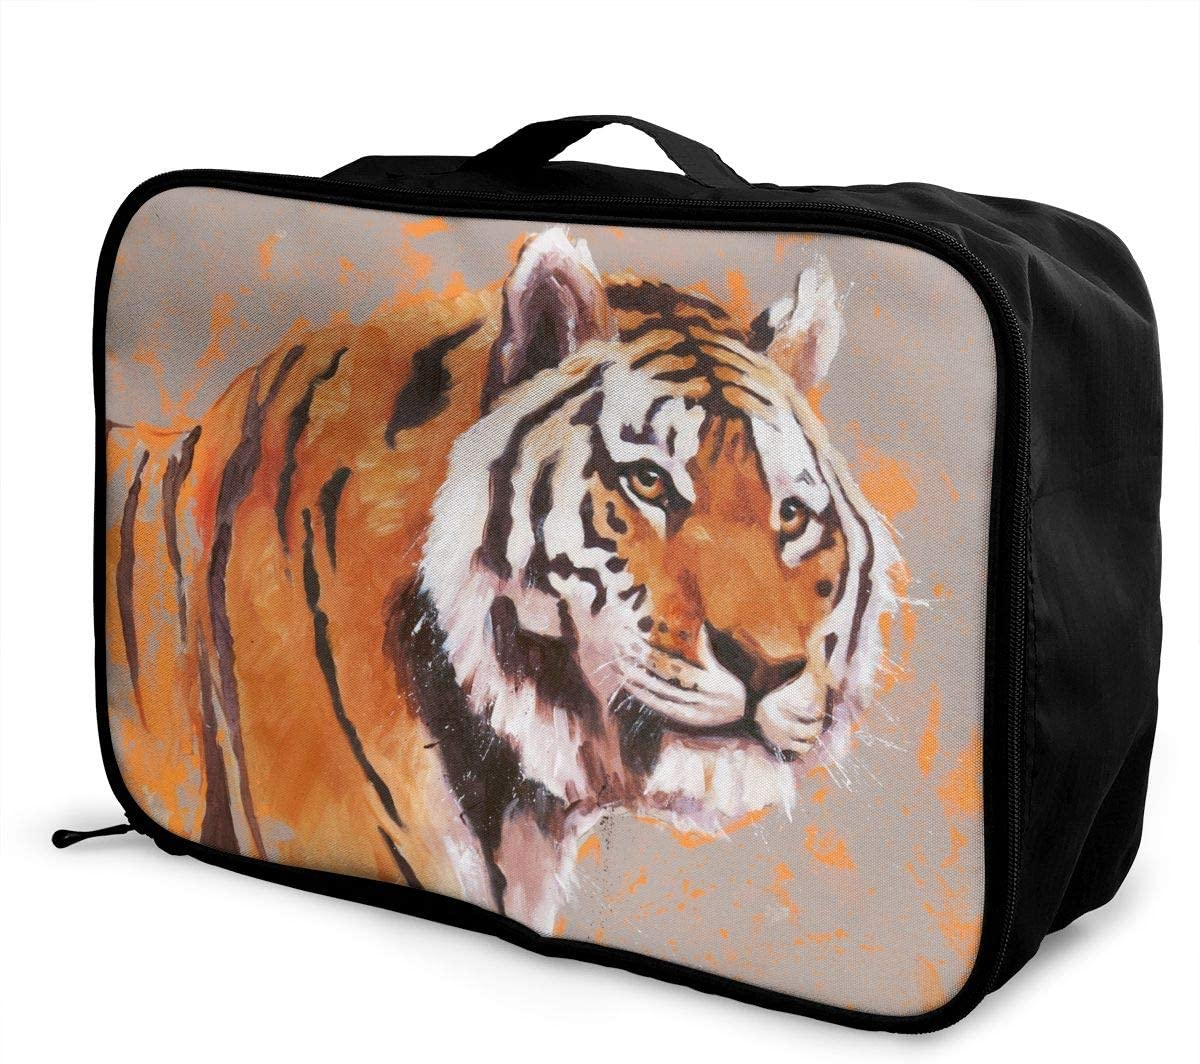 YueLJB Burning Bright Tiger Lightweight Large Capacity Portable Luggage Bag Travel Duffel Bag Storage Carry Luggage Duffle Tote Bag